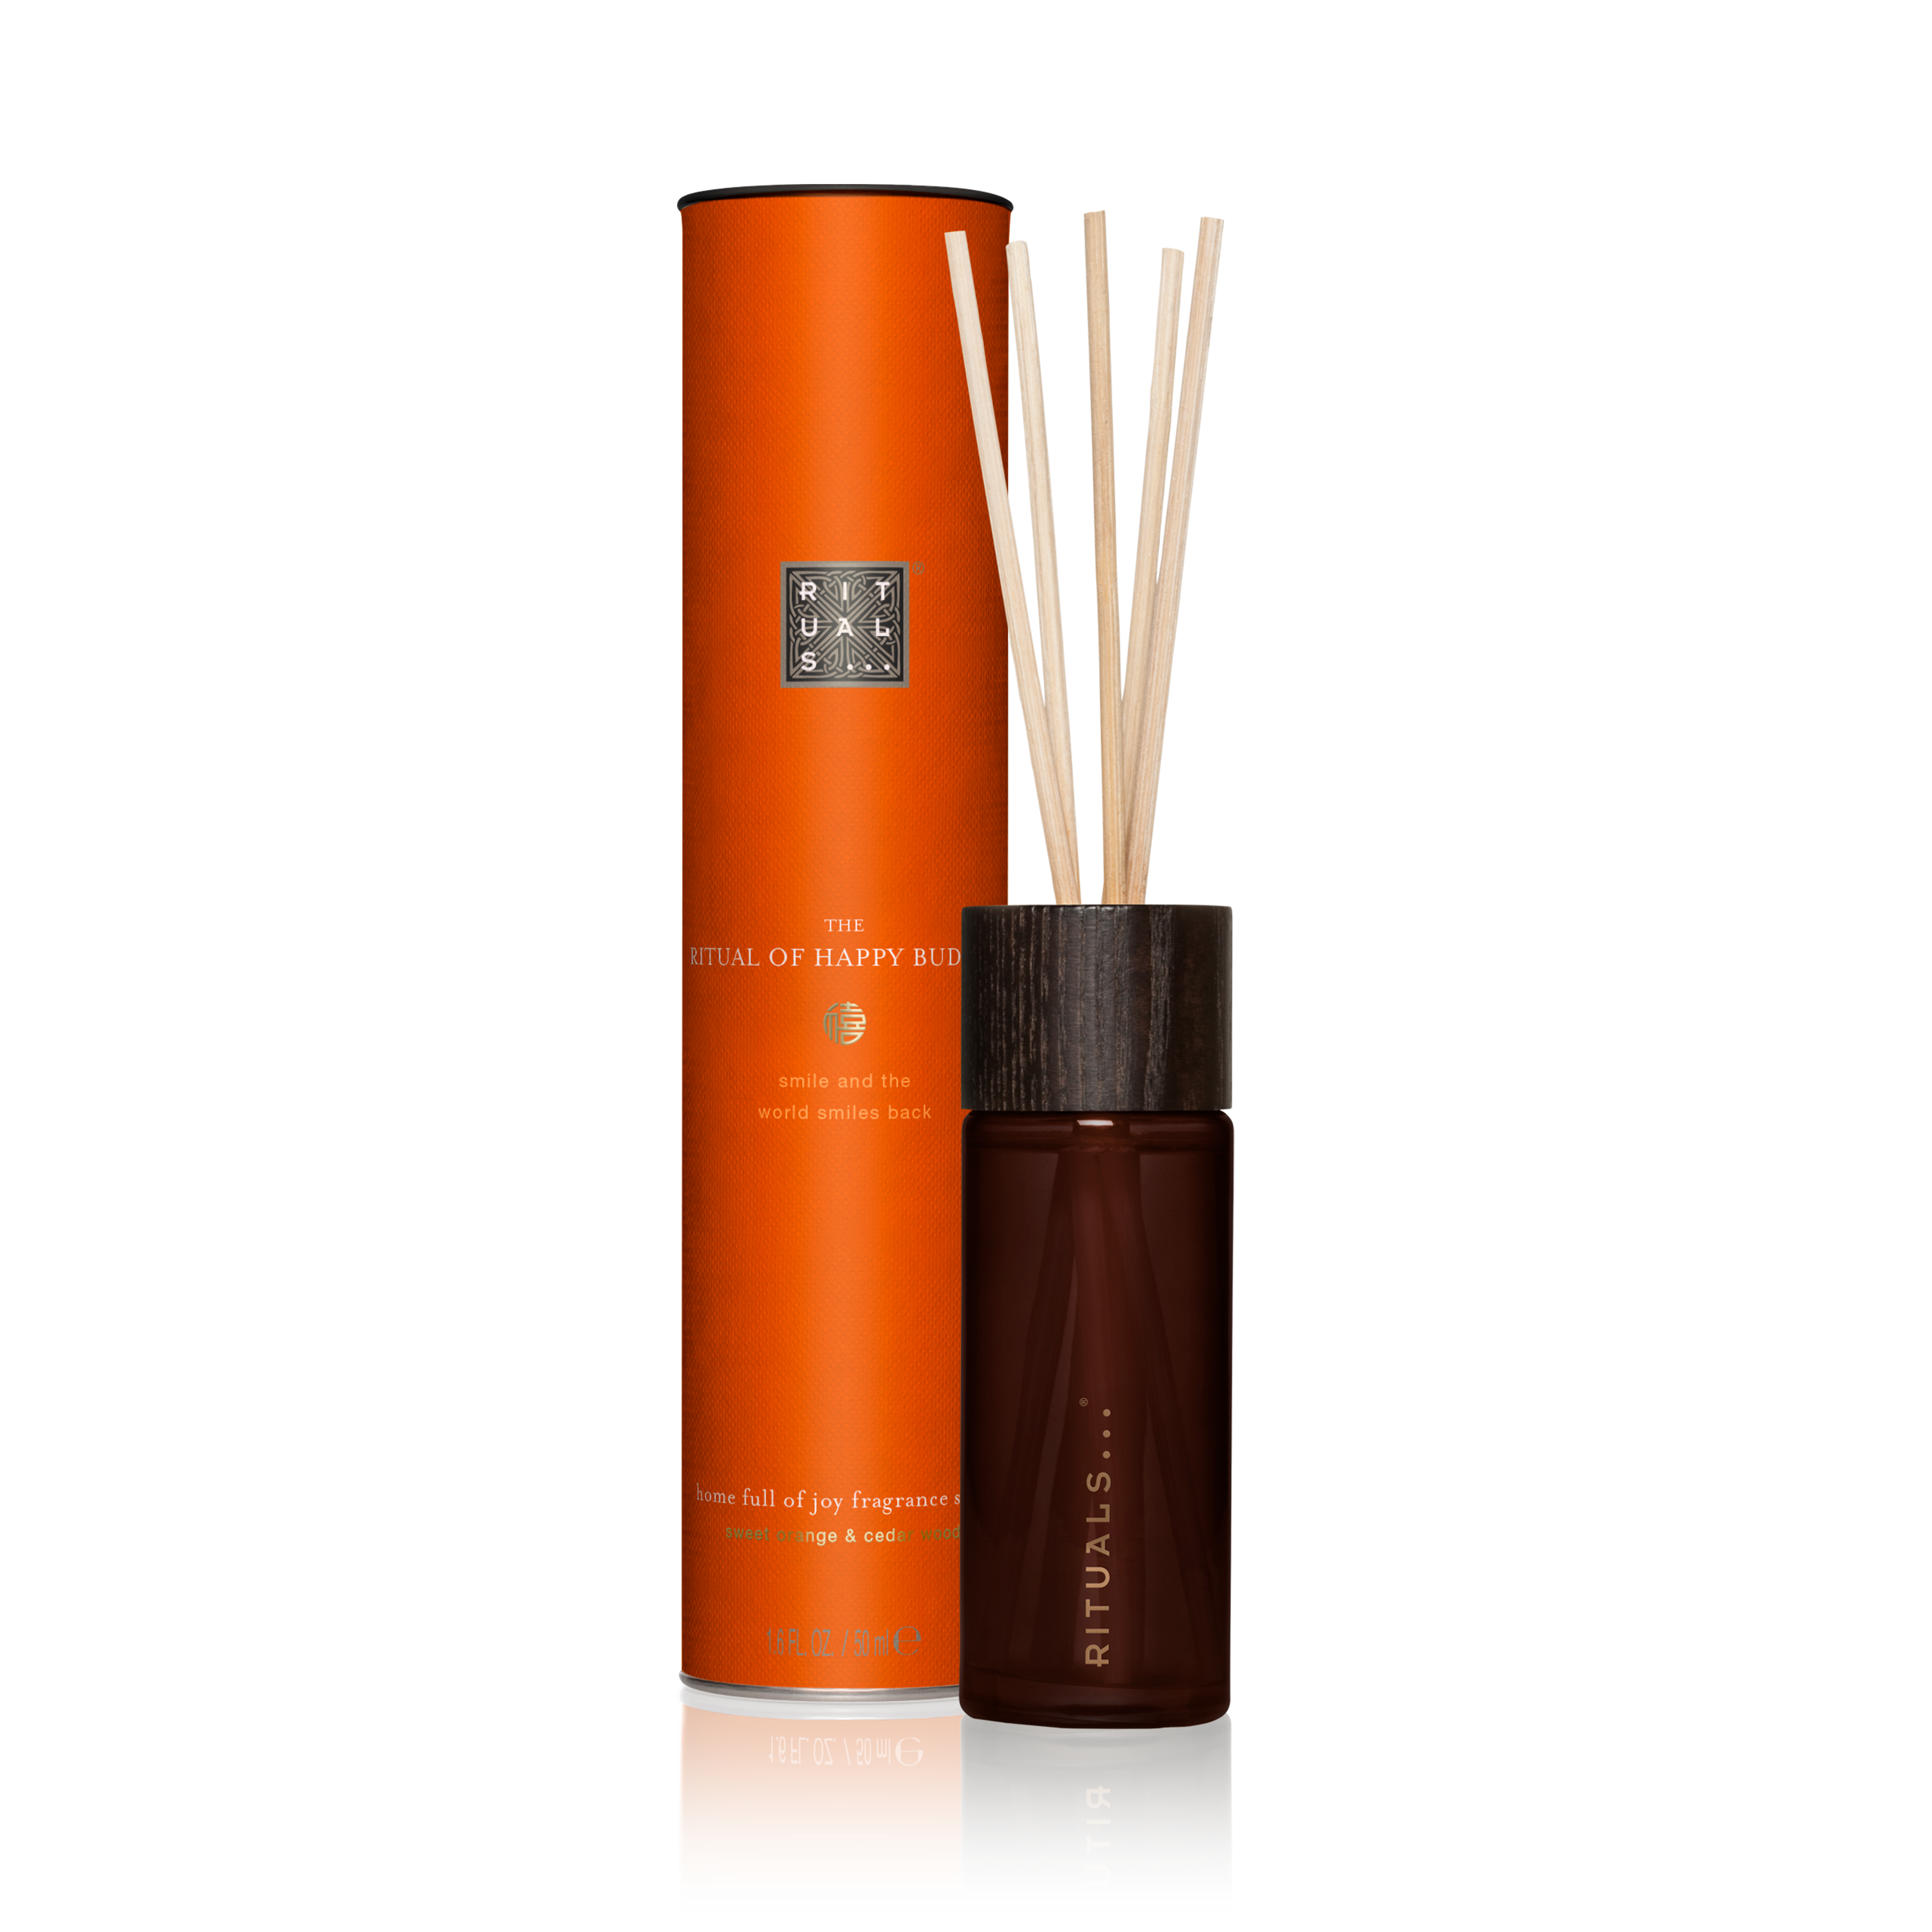 The Ritual of Happy Buddha Fragrance Sticks